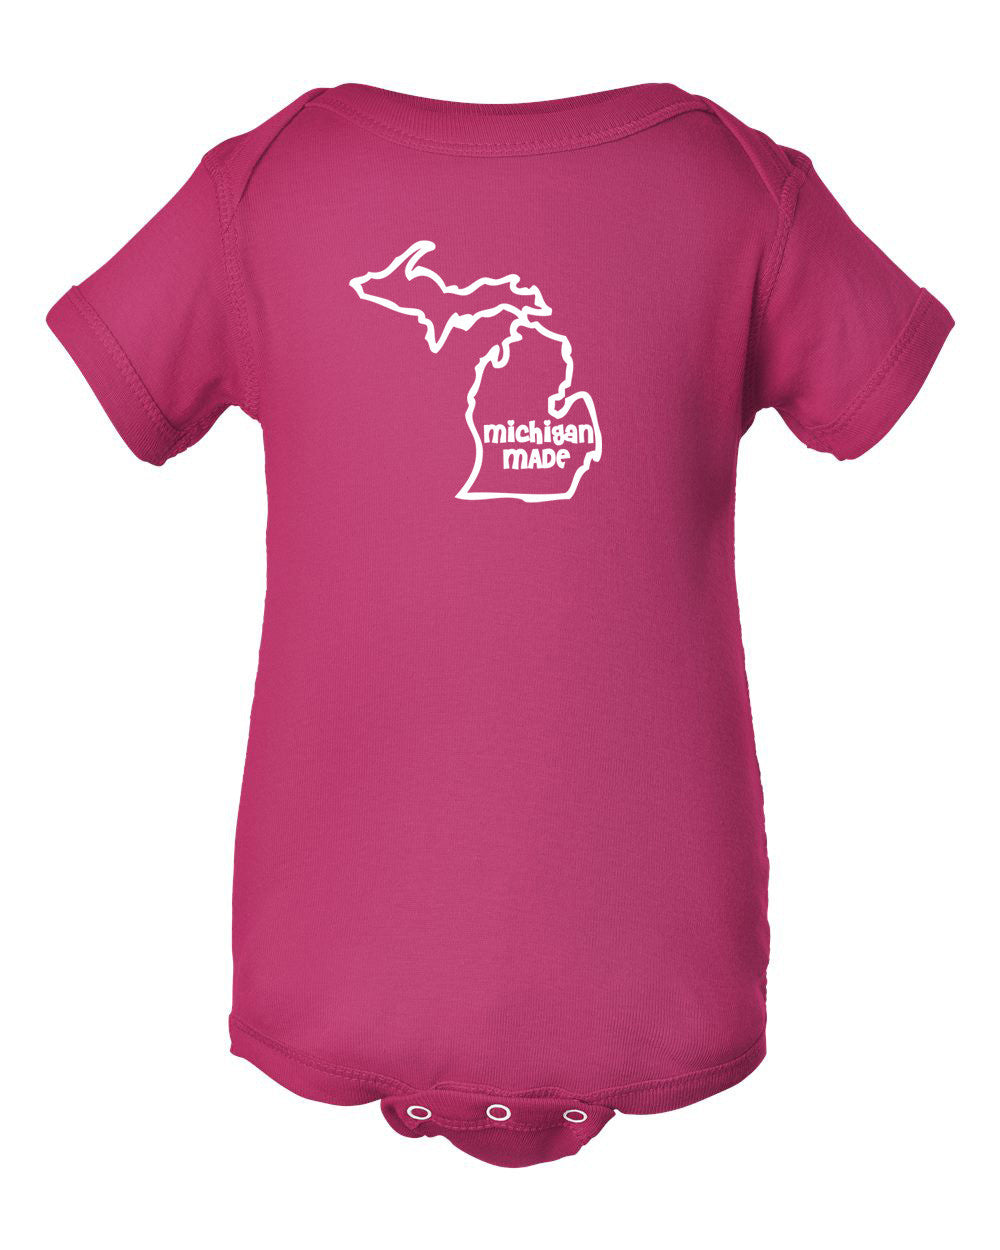 Michigan Made Outline Baby Onesie - Great Lakes Gift Co.